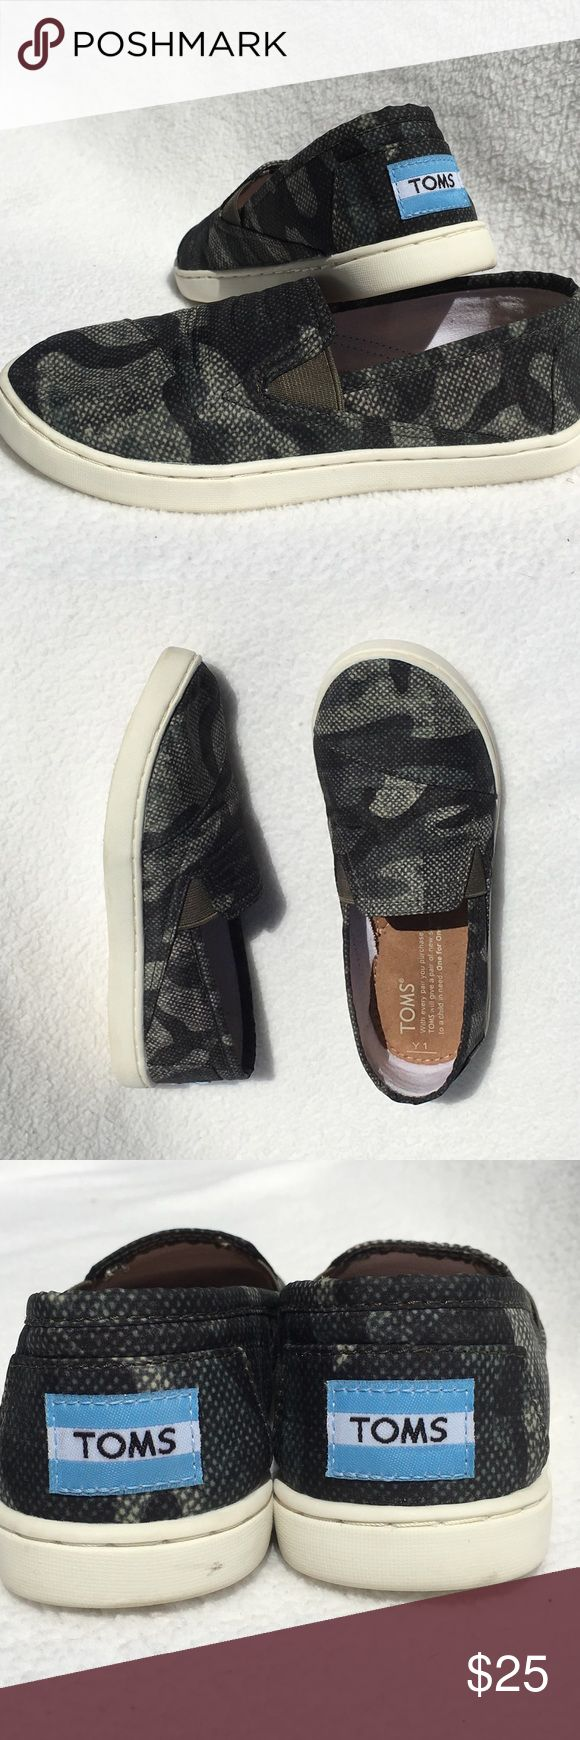 Camouflage TOMS - Boys Y1 Camouflage TOMS - Boys Y1. Black/Gray. Excellent Condition Worn 2 times TOMS Shoes Sneakers